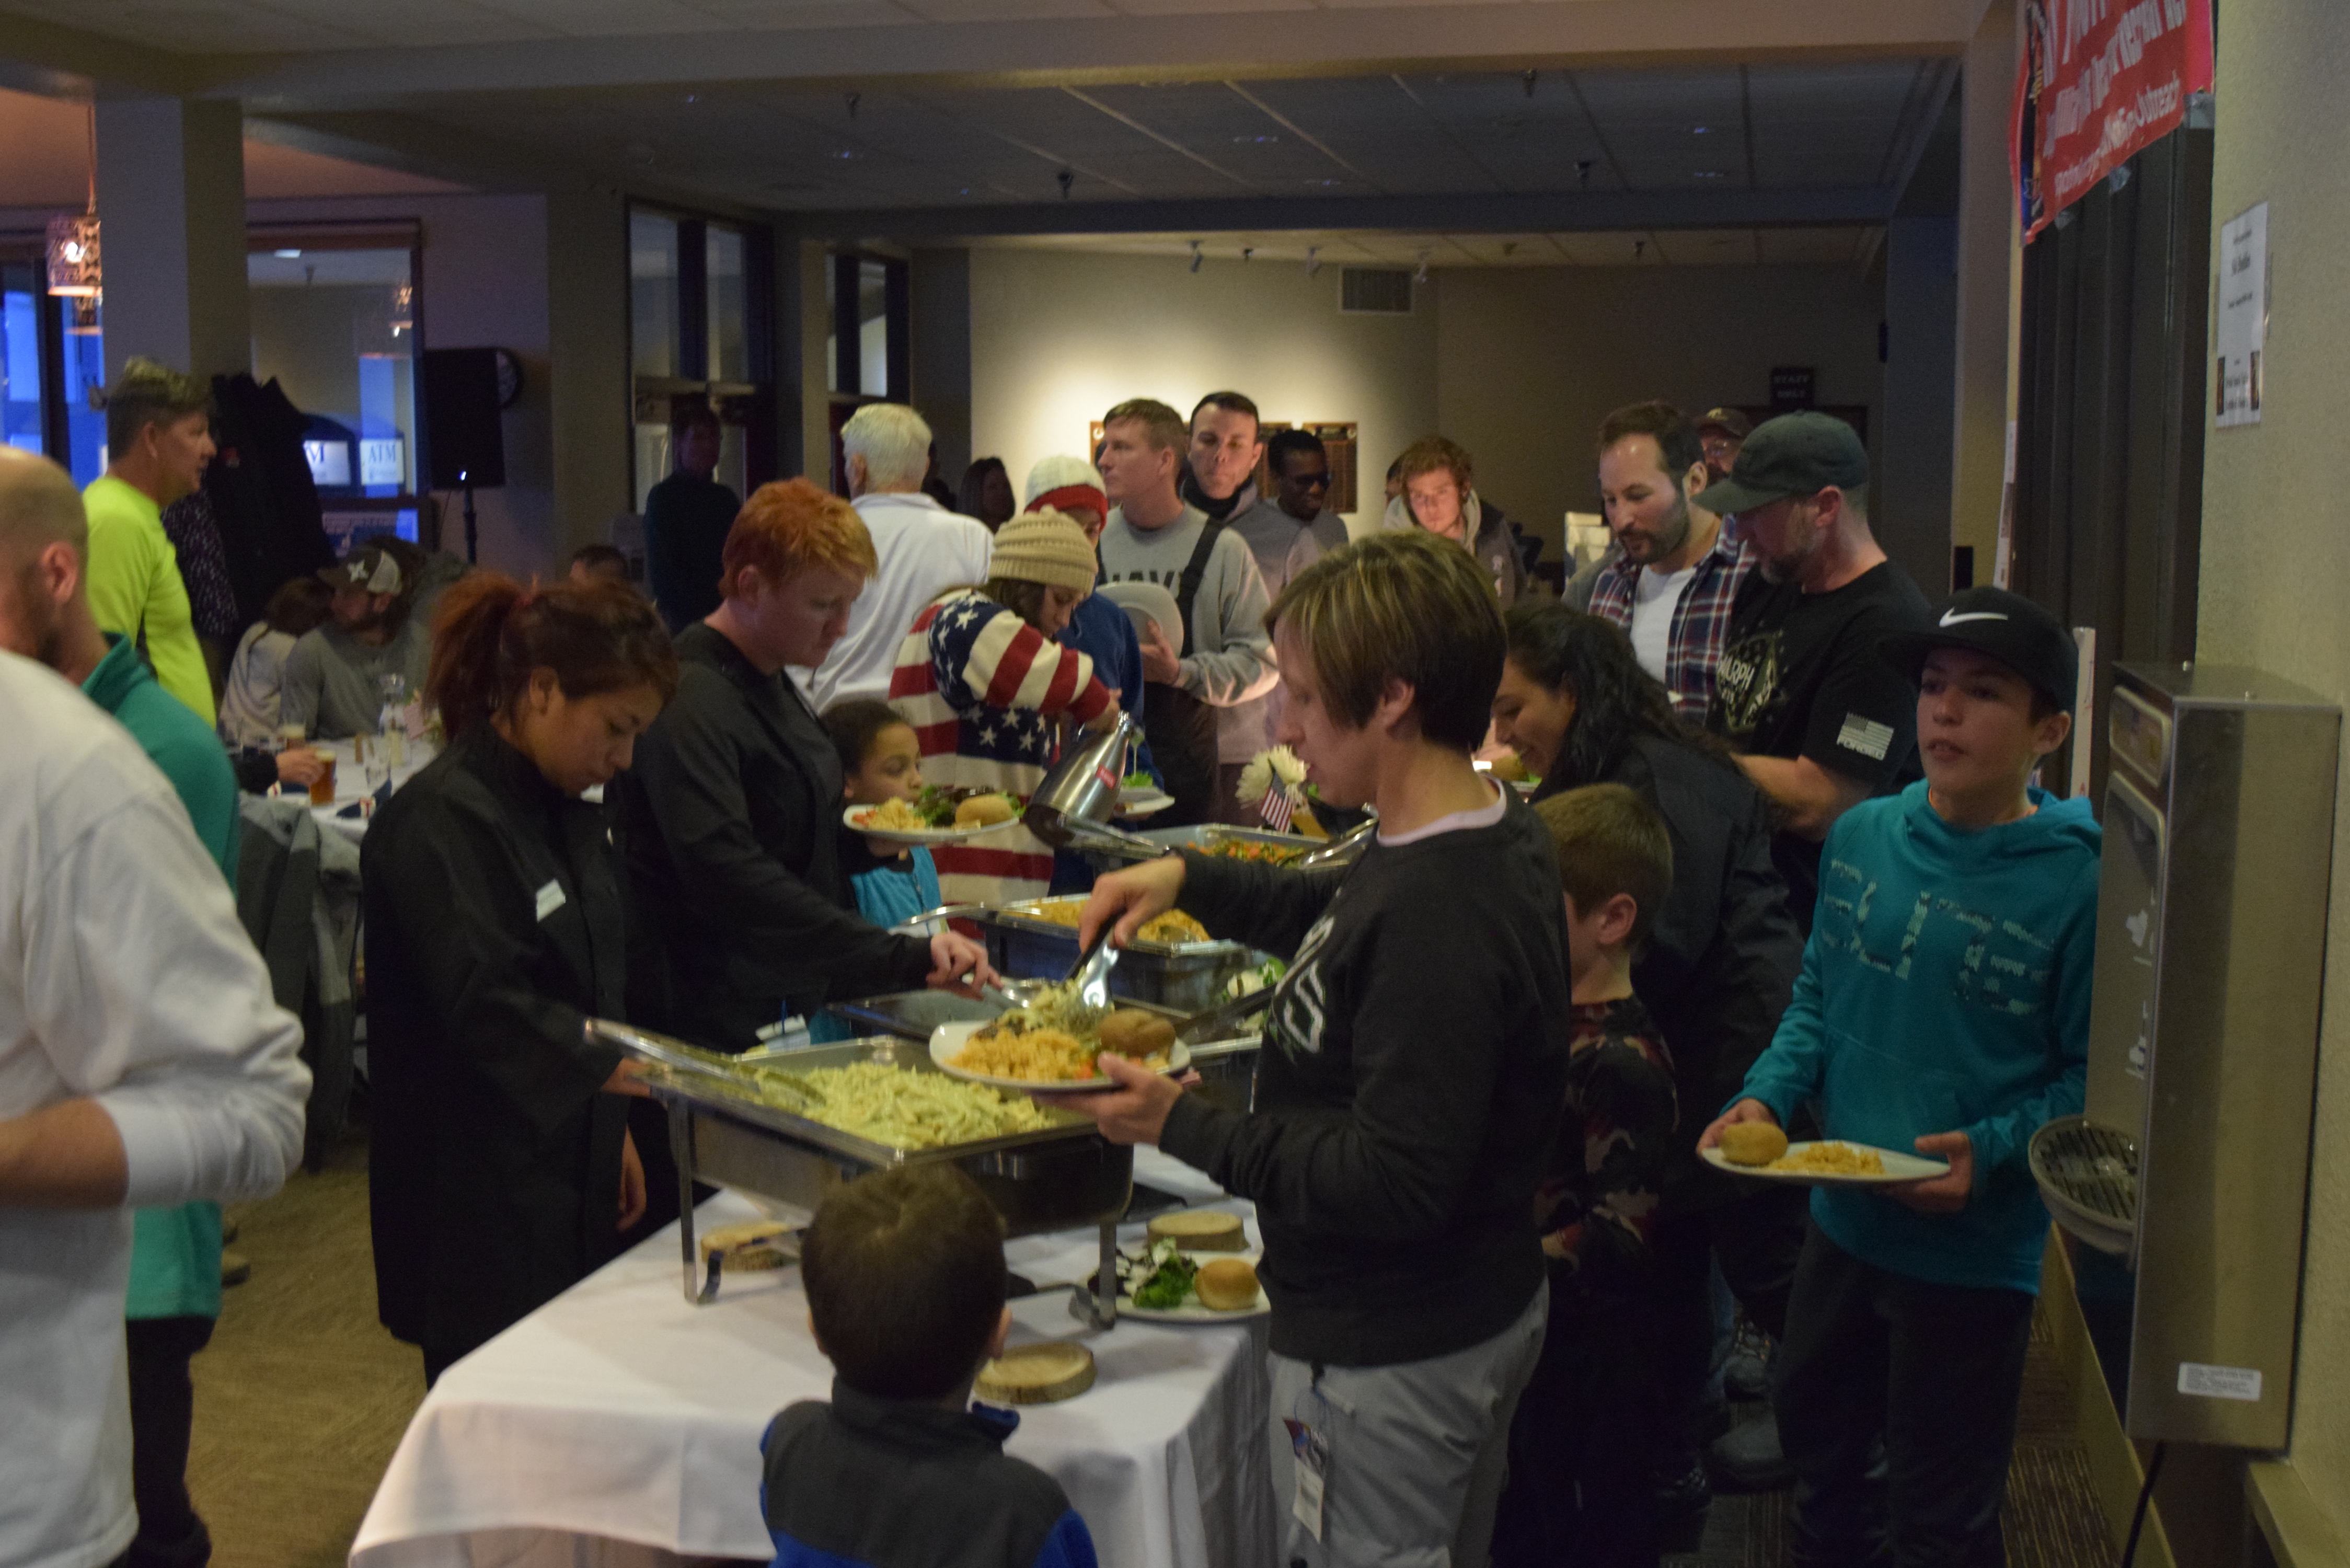 Busy dinner buffet at skier's diner in the evening